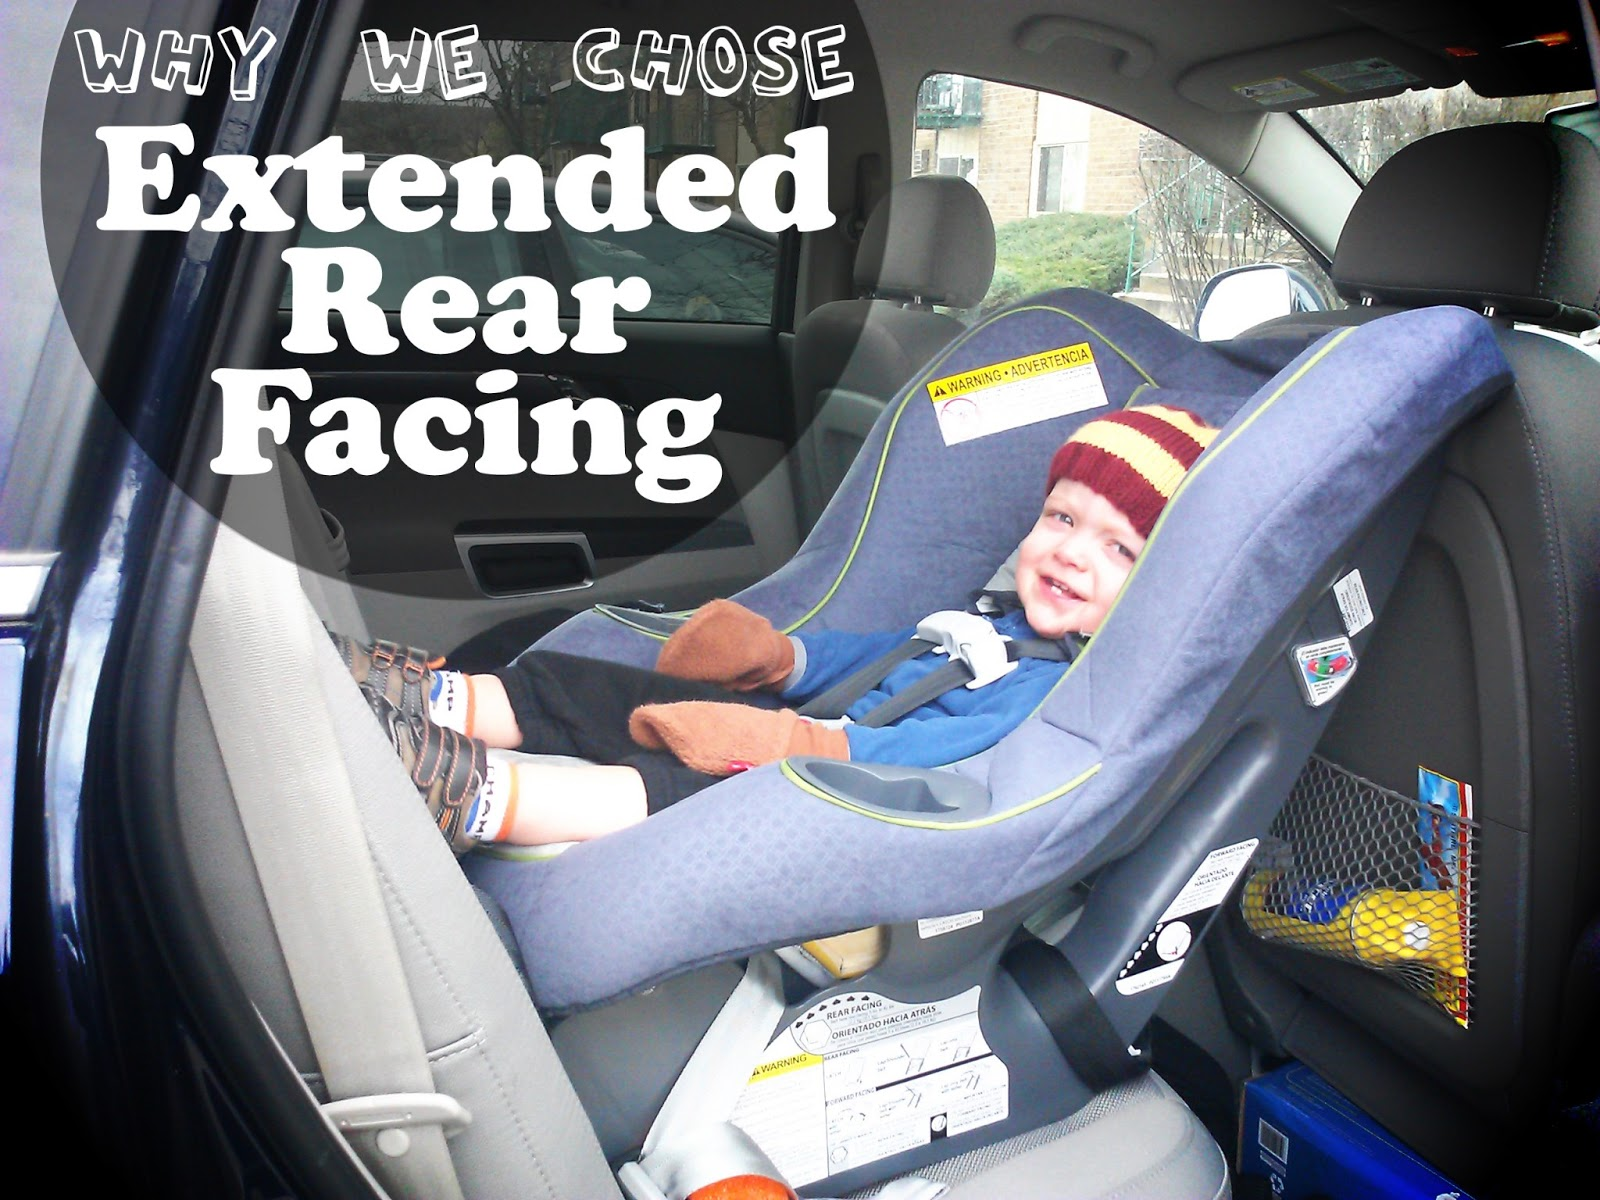 Extended Rear Facing - The Accidental Wallflower